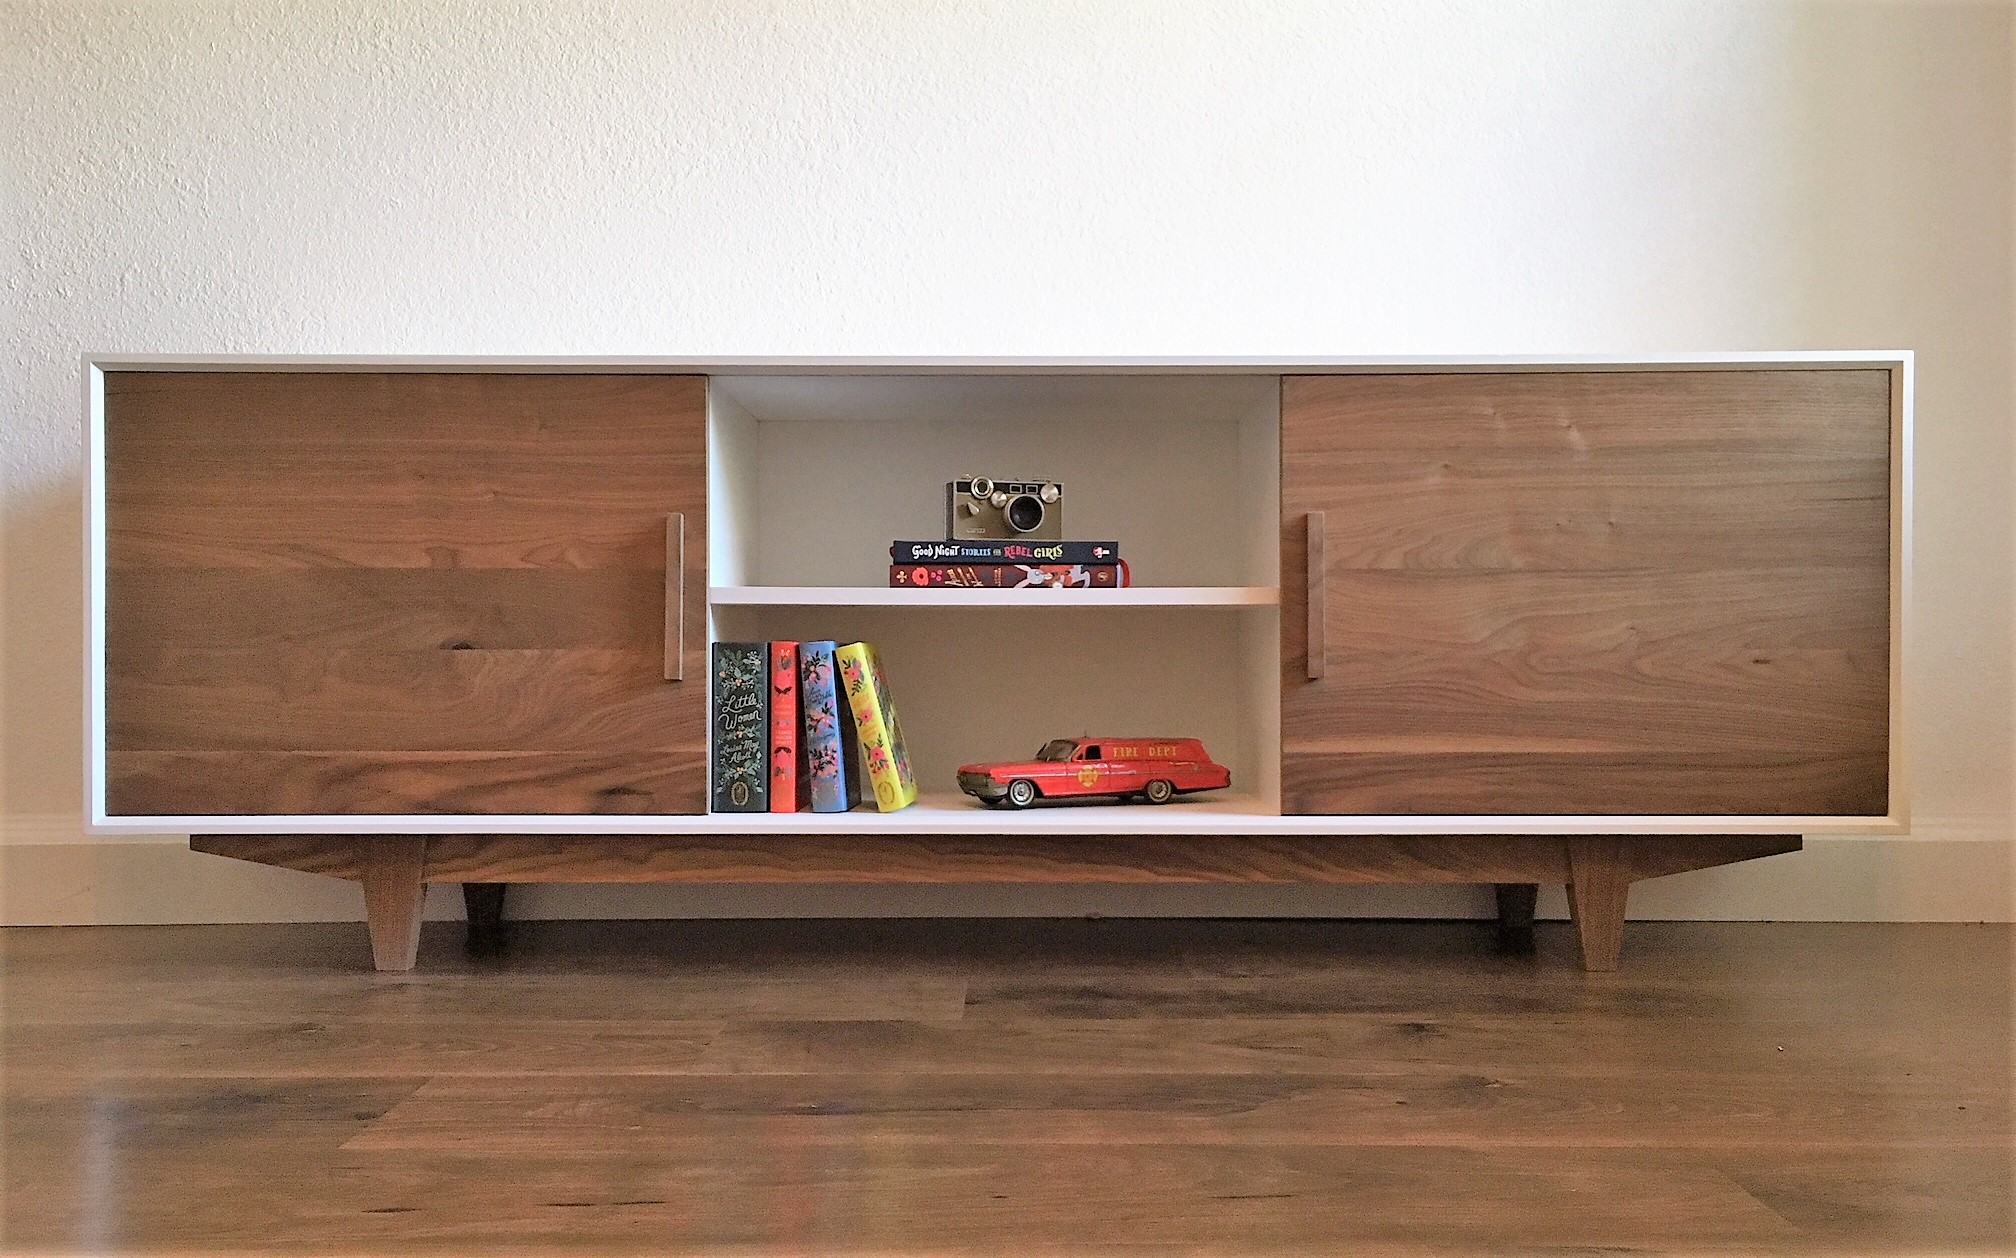 Alamo Design Co Tampa FL Custom Furniture Mid Century Console Front View.jpg